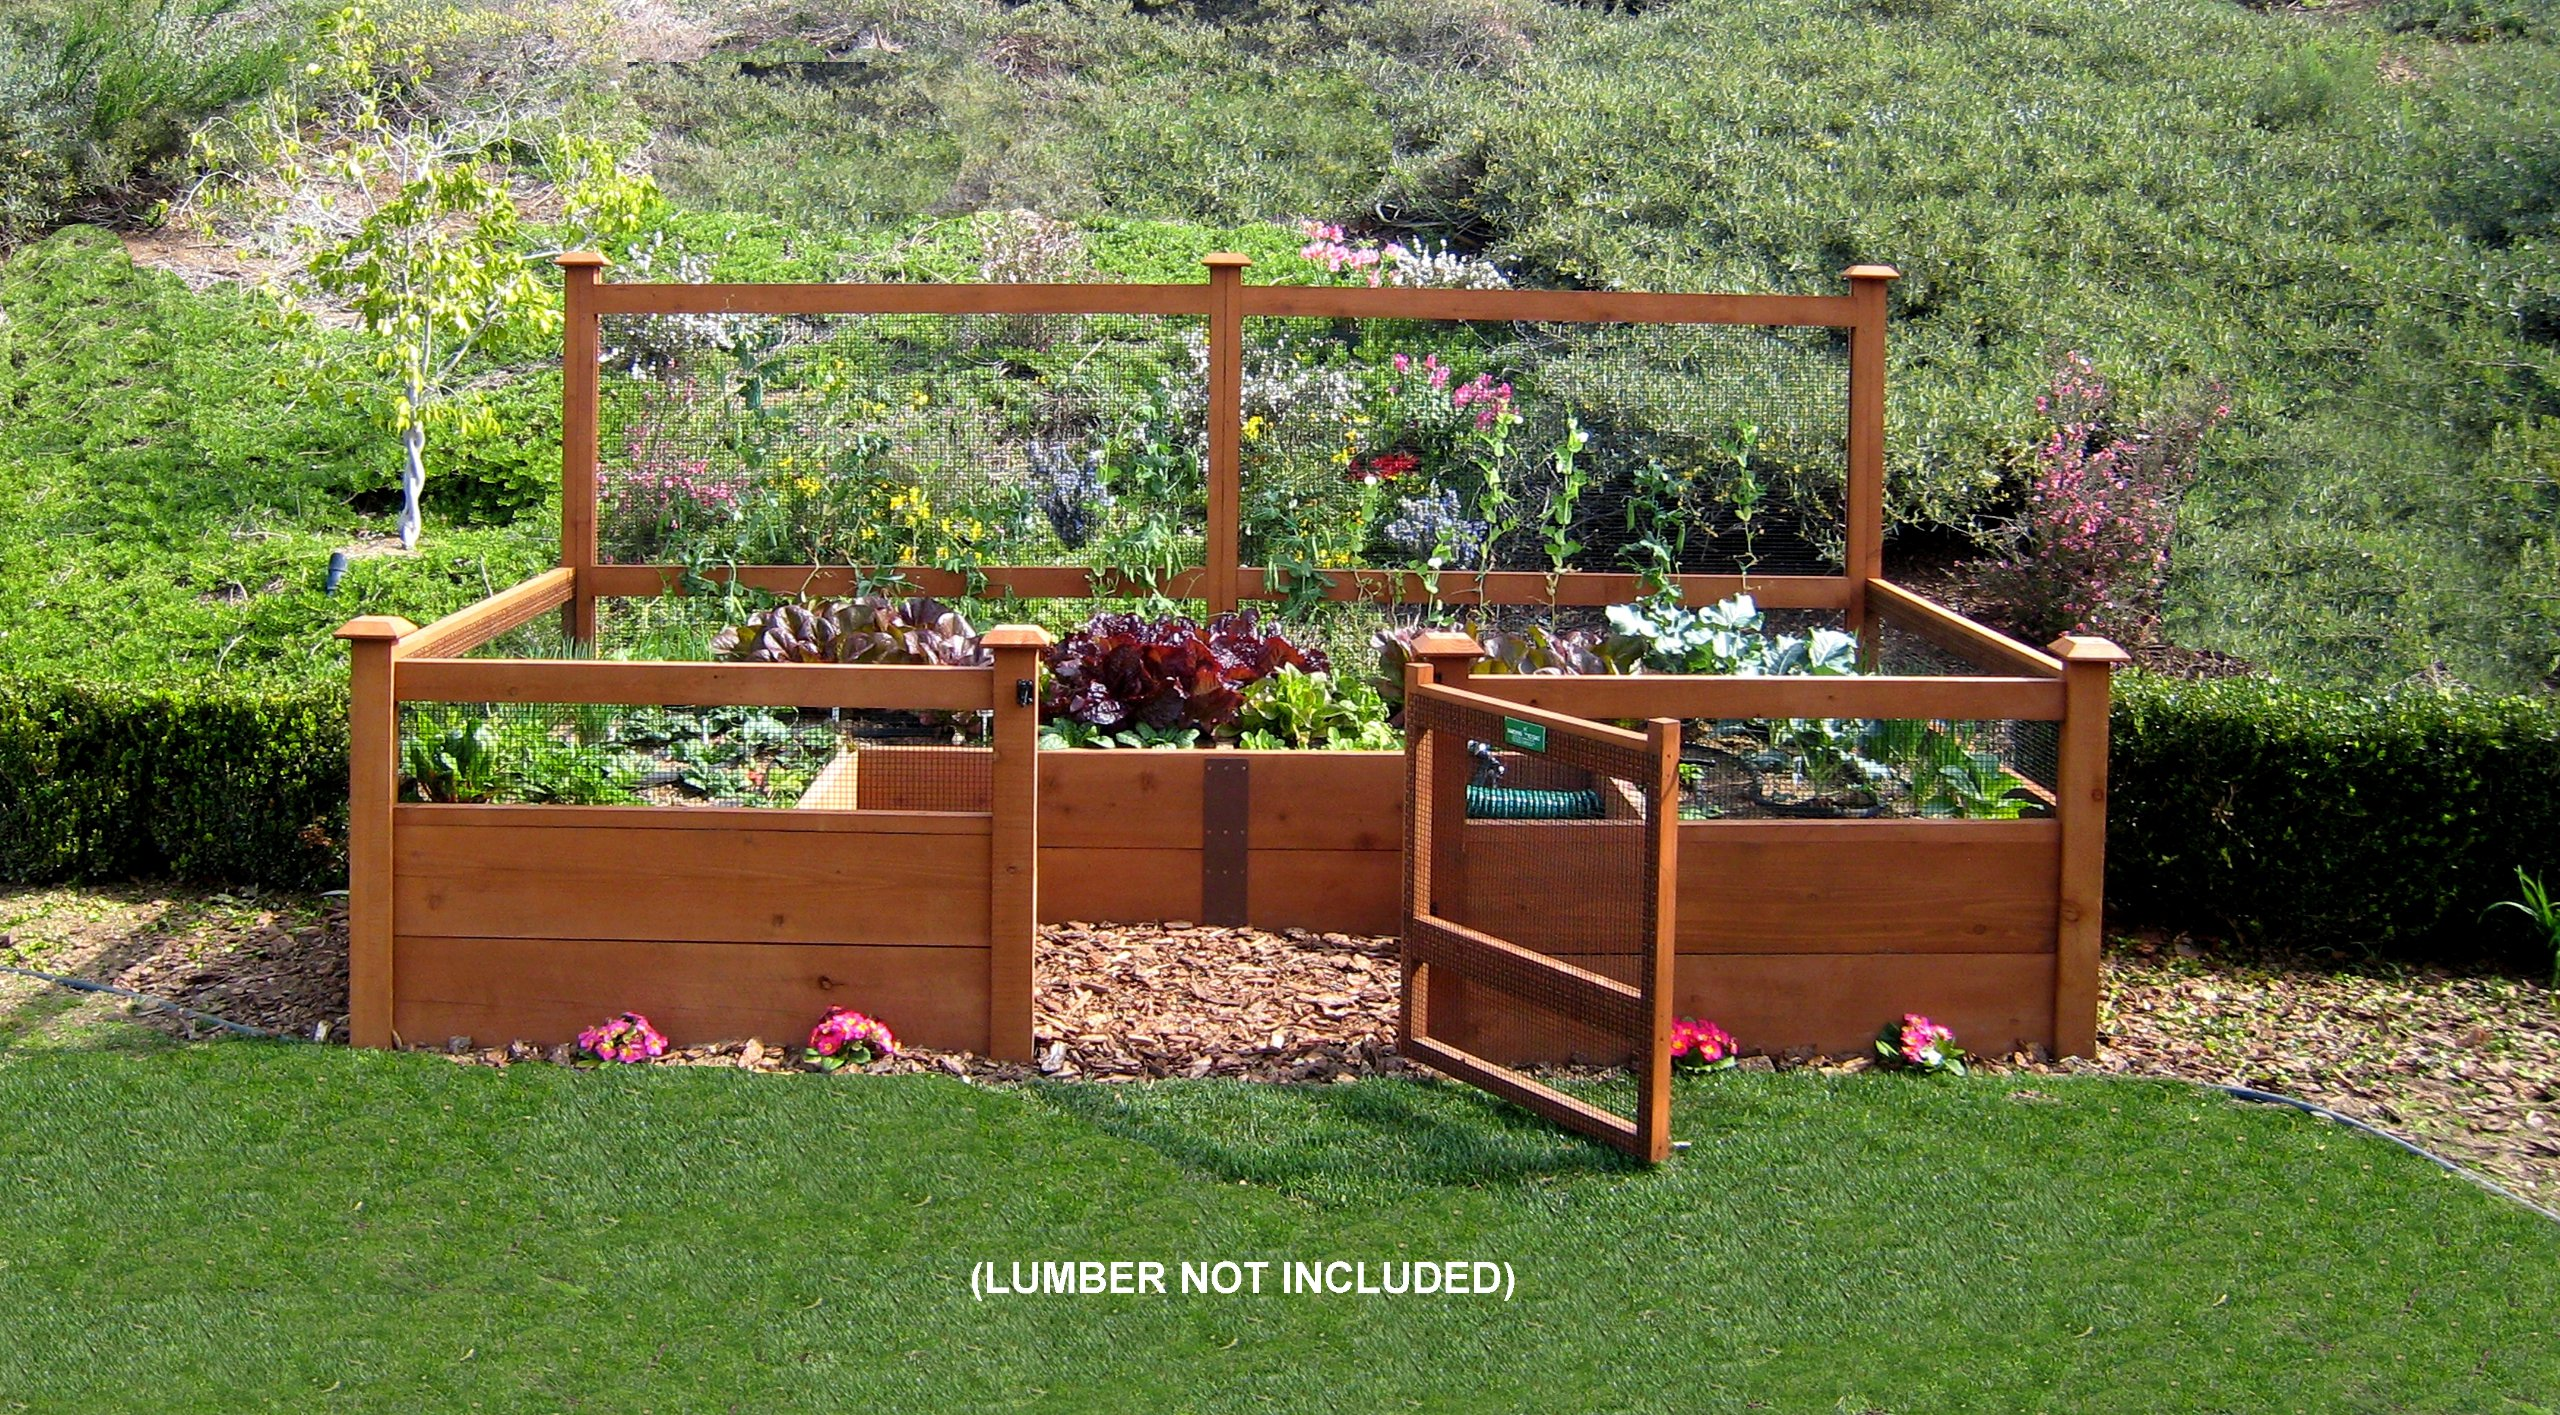 Just Add Lumber Vegetable Garden Kit - 6'x12' Deluxe by Gardens To Gro